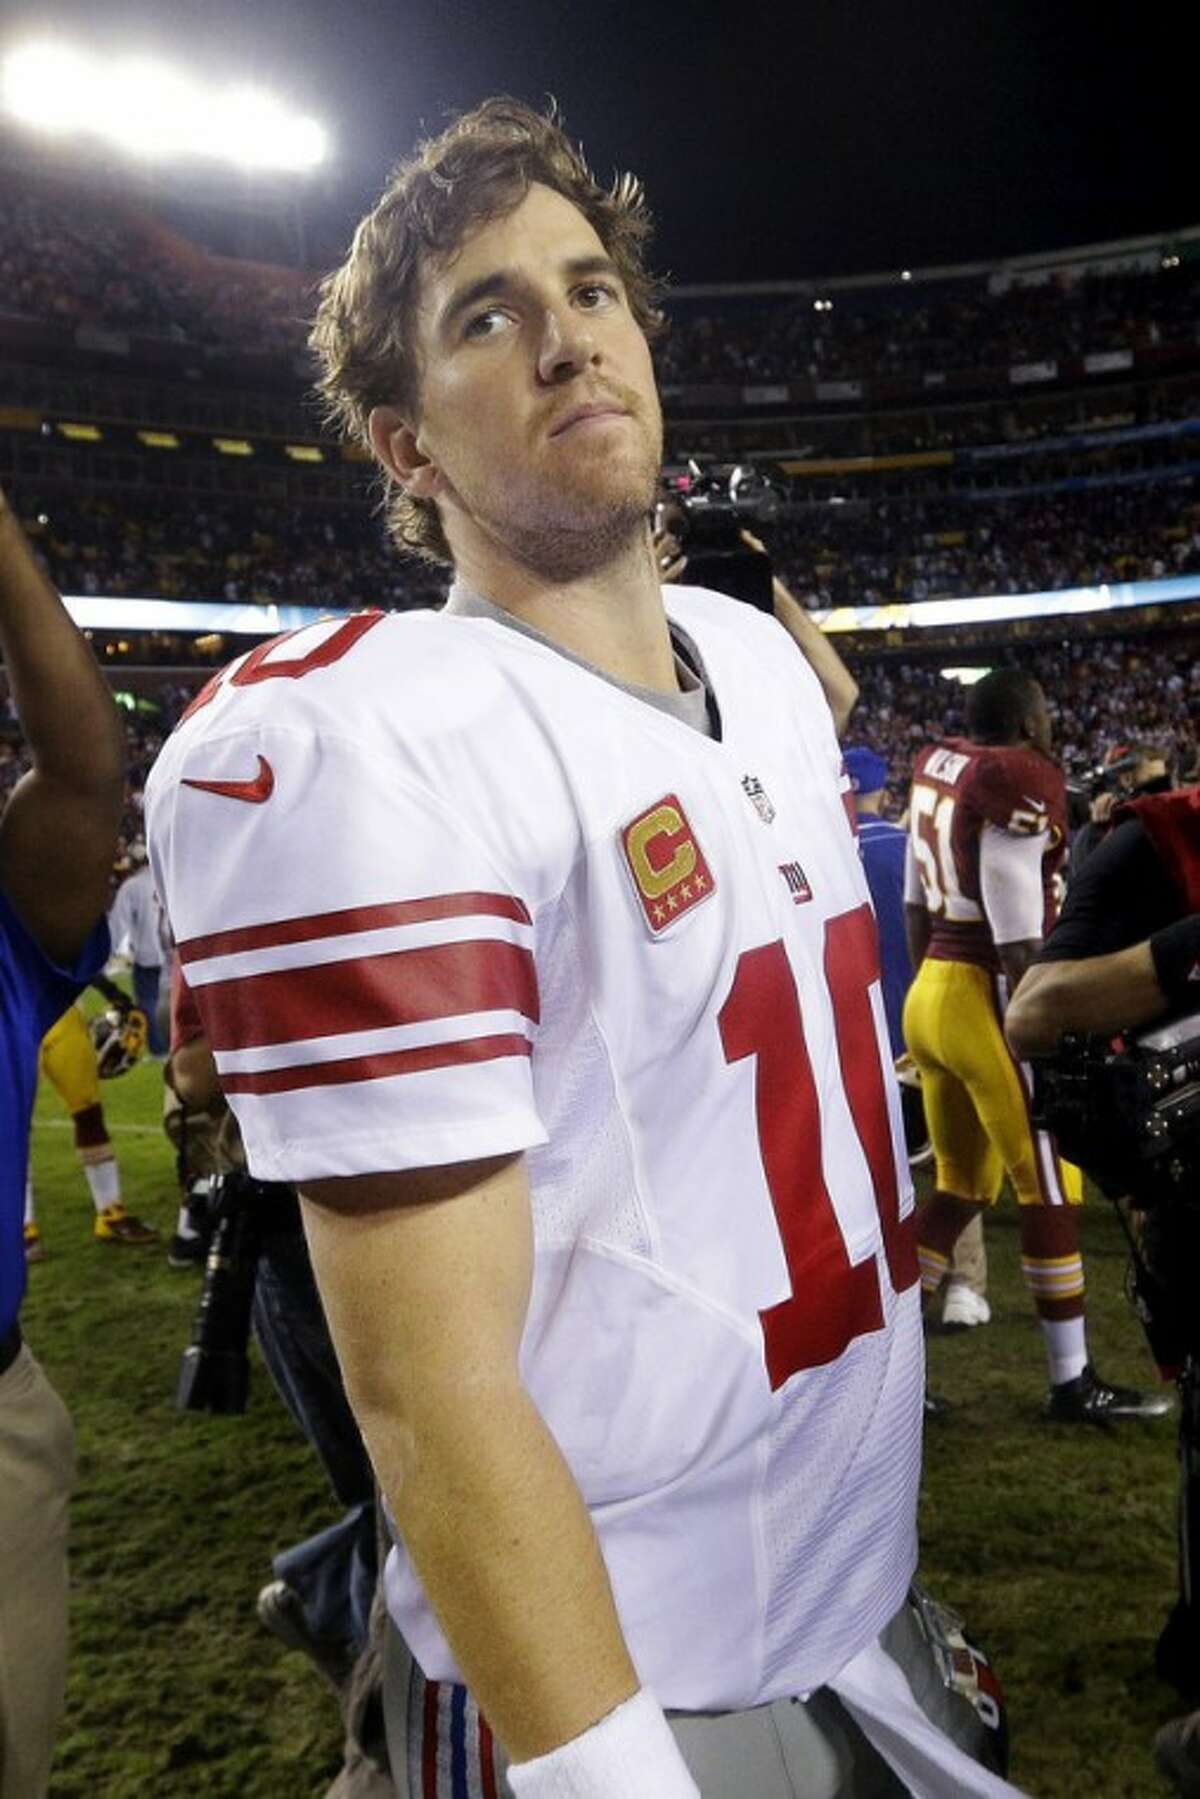 New York Giants quarterback Eli Manning looks over his shoulder as he leaves the field after an NFL football game against the Washington Redskins in Landover, Md., Monday, Dec. 3, 2012. The Redskins won 17-16. (AP Photo/Patrick Semansky)